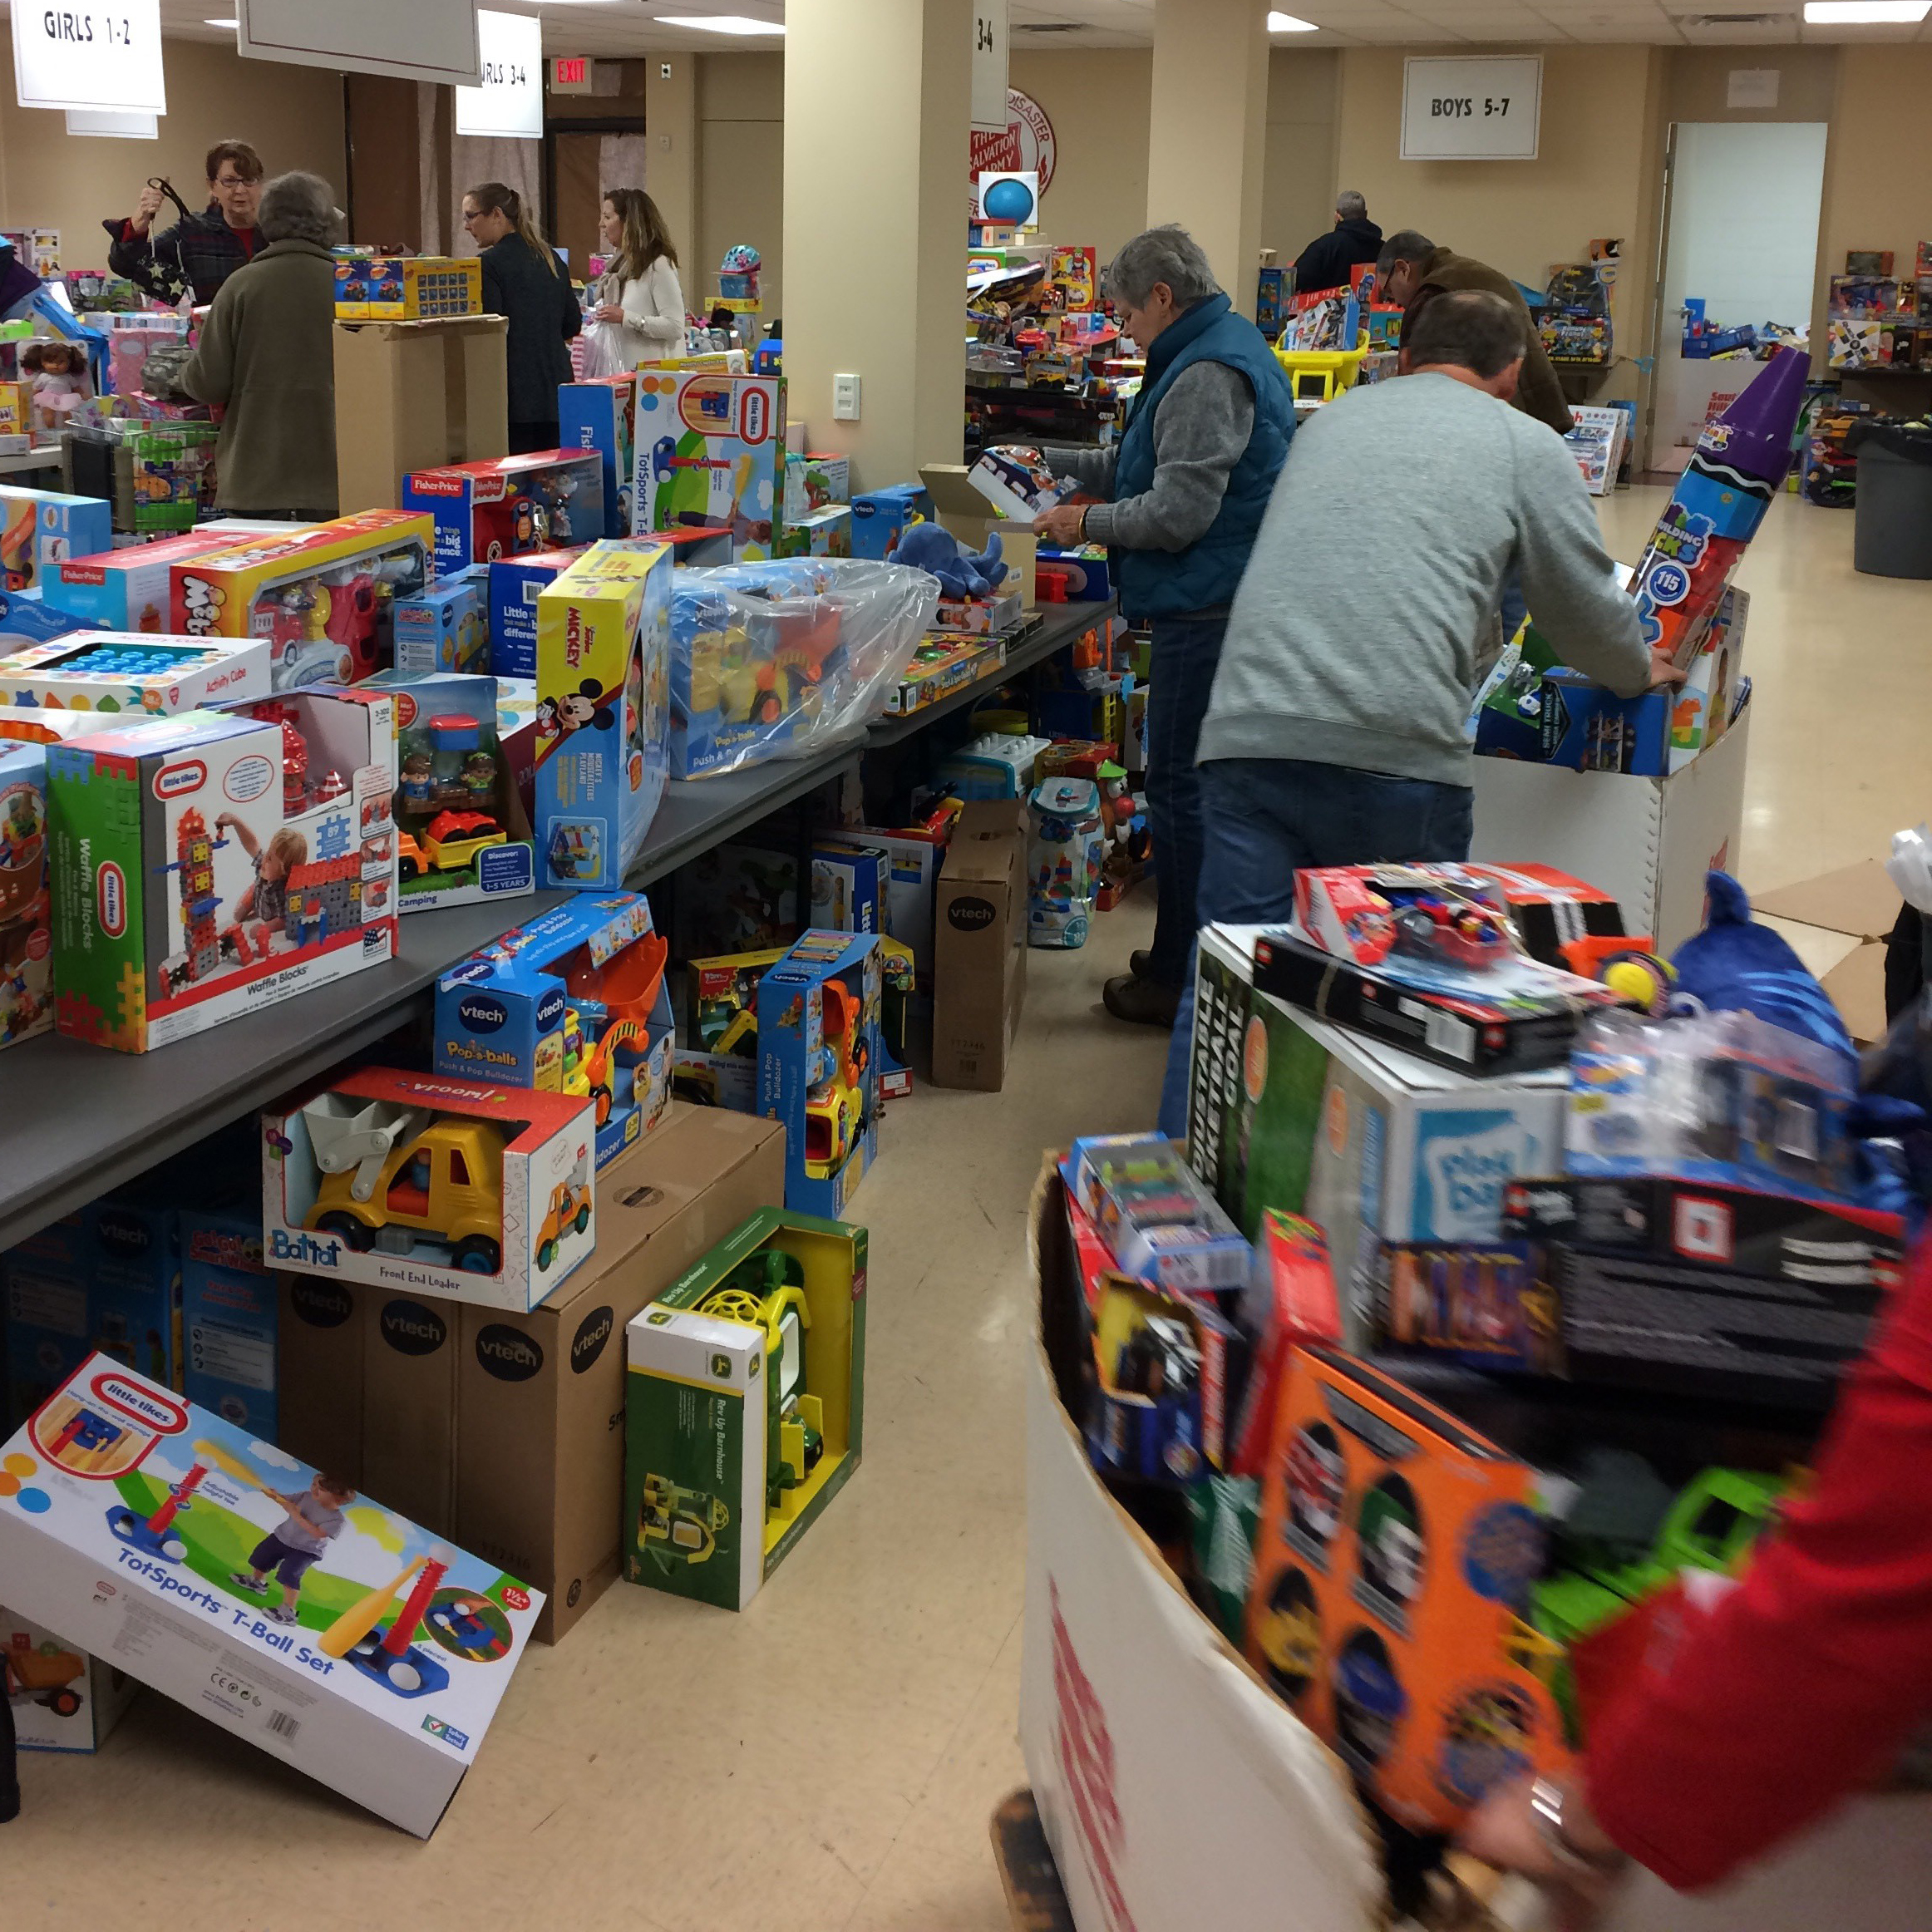 The Treasures for Children toy campaign is just one way the Salvation Army helps those in need during the holiday season. They also provide thousands of children and individuals with Thanksgiving and Christmas dinners, winter coats, clothing and other essential items.